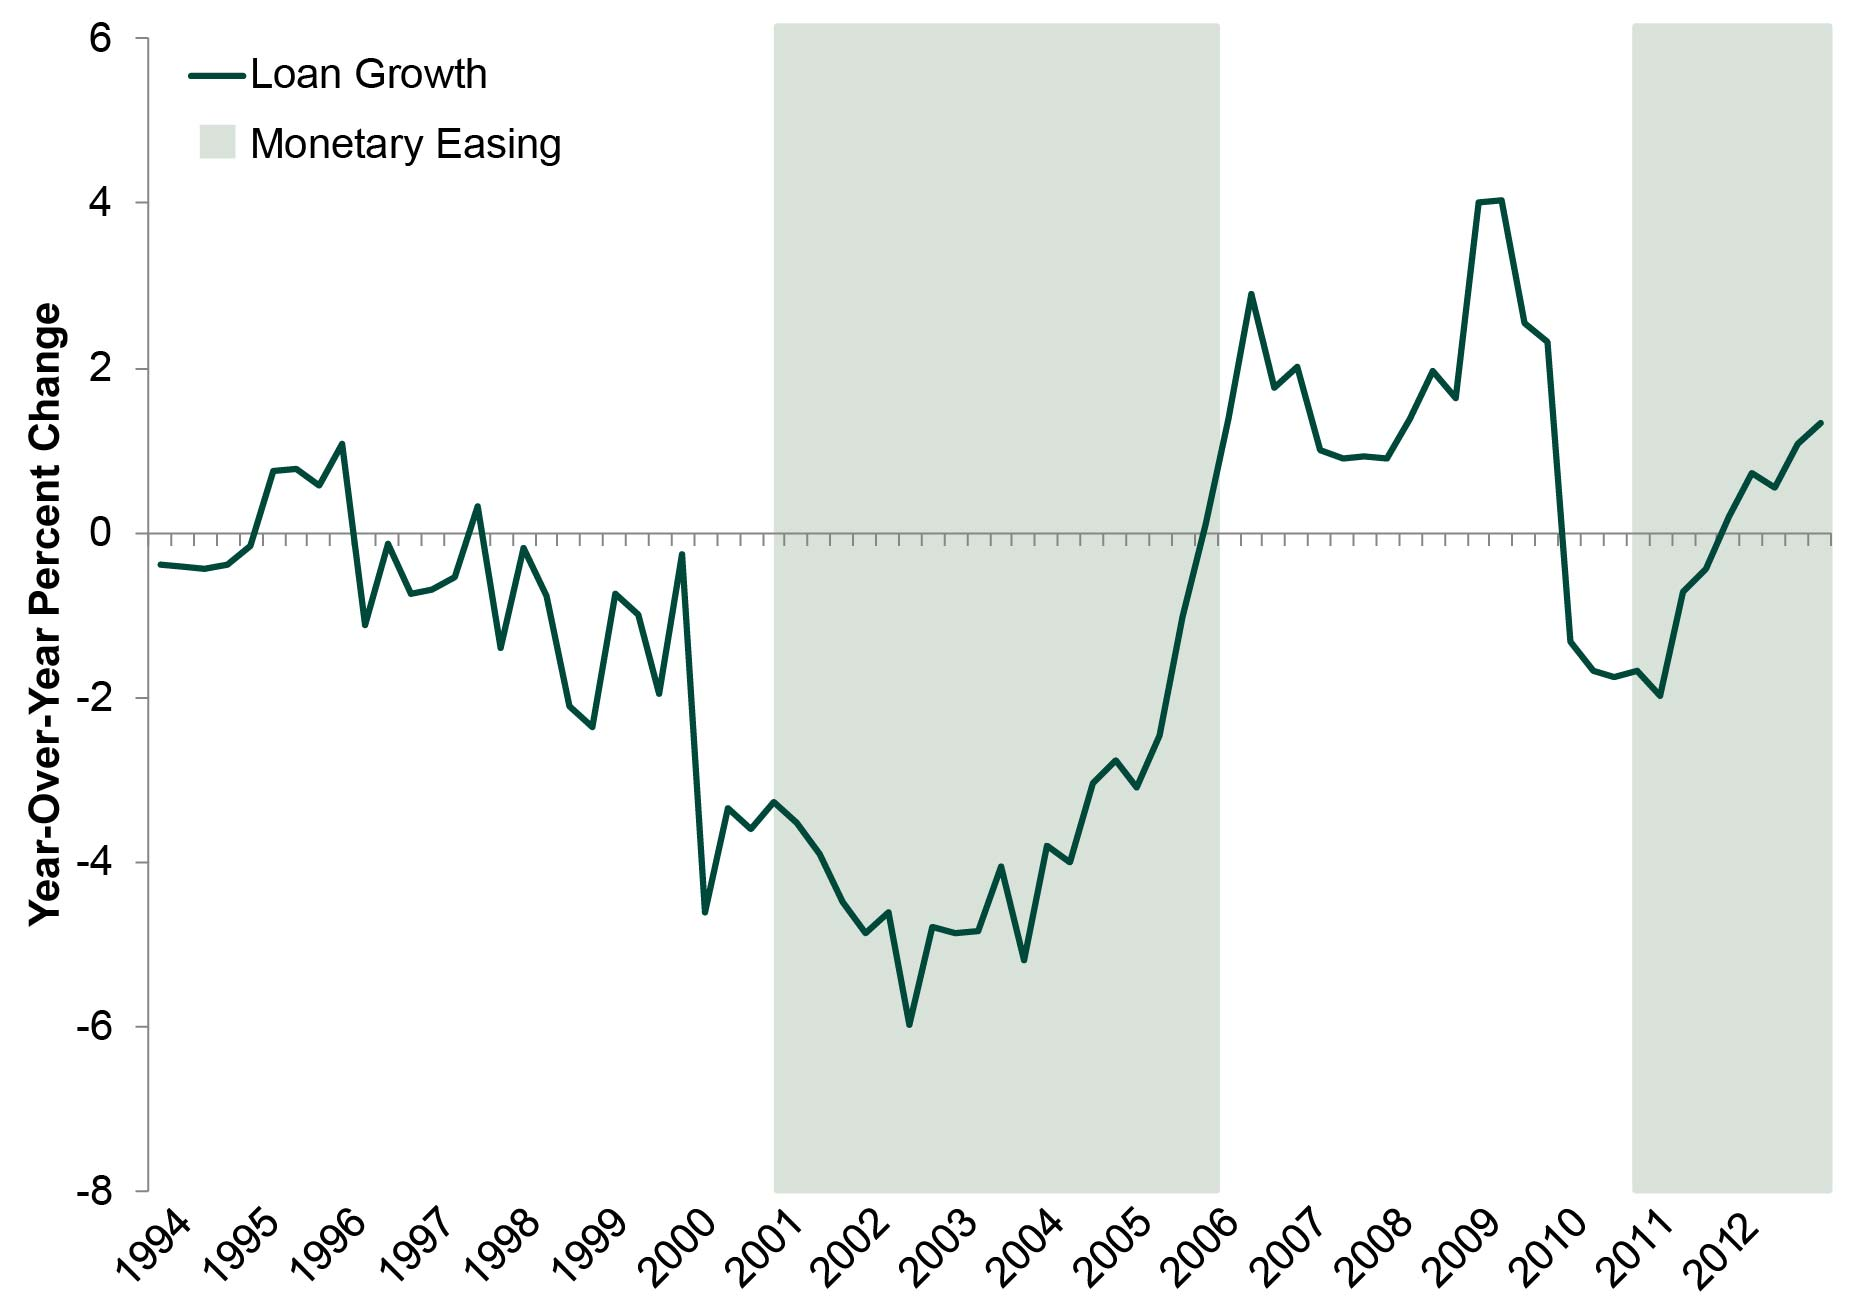 Exhibit 3: Annual Loan Growth and Monetary Easing